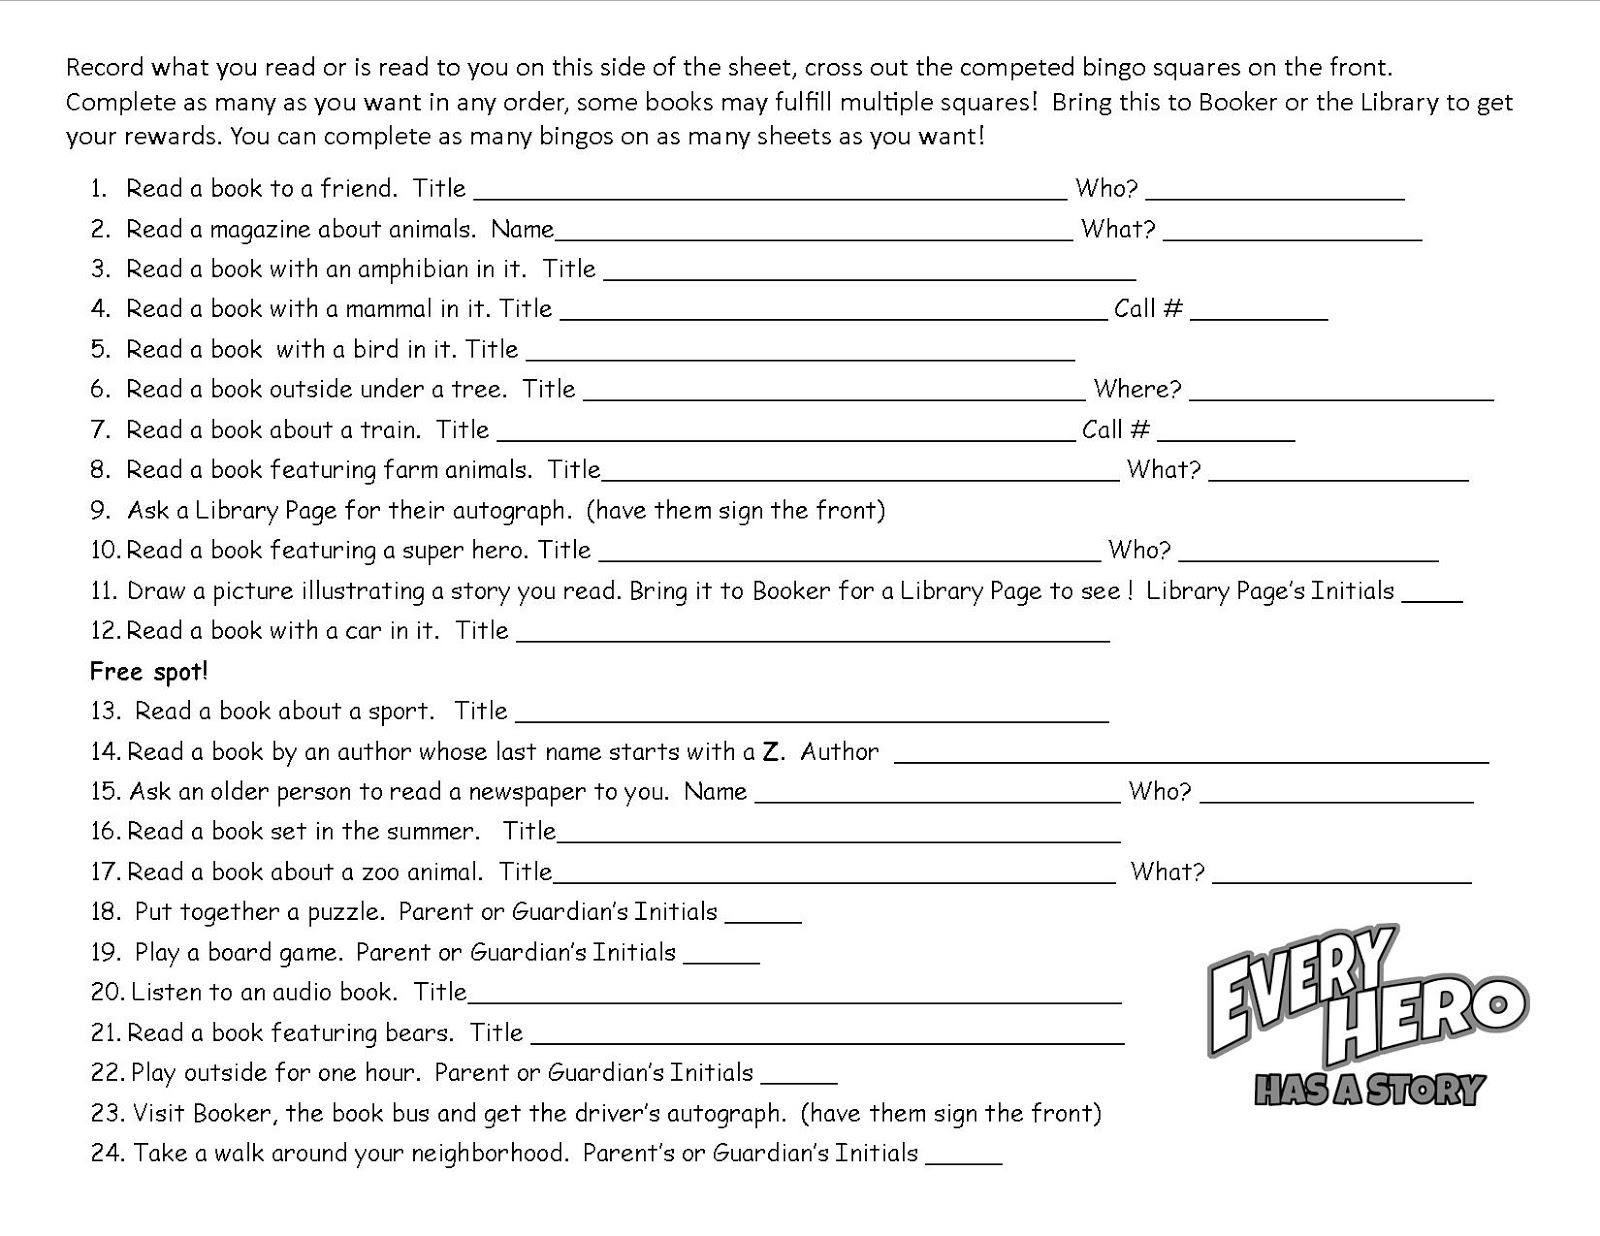 Worksheets Story Reading For Grade 3 childrens events and resources every hero has a story summer for preschool through 3rd grade kids going into 3 these include read to me click on images enlarge then print